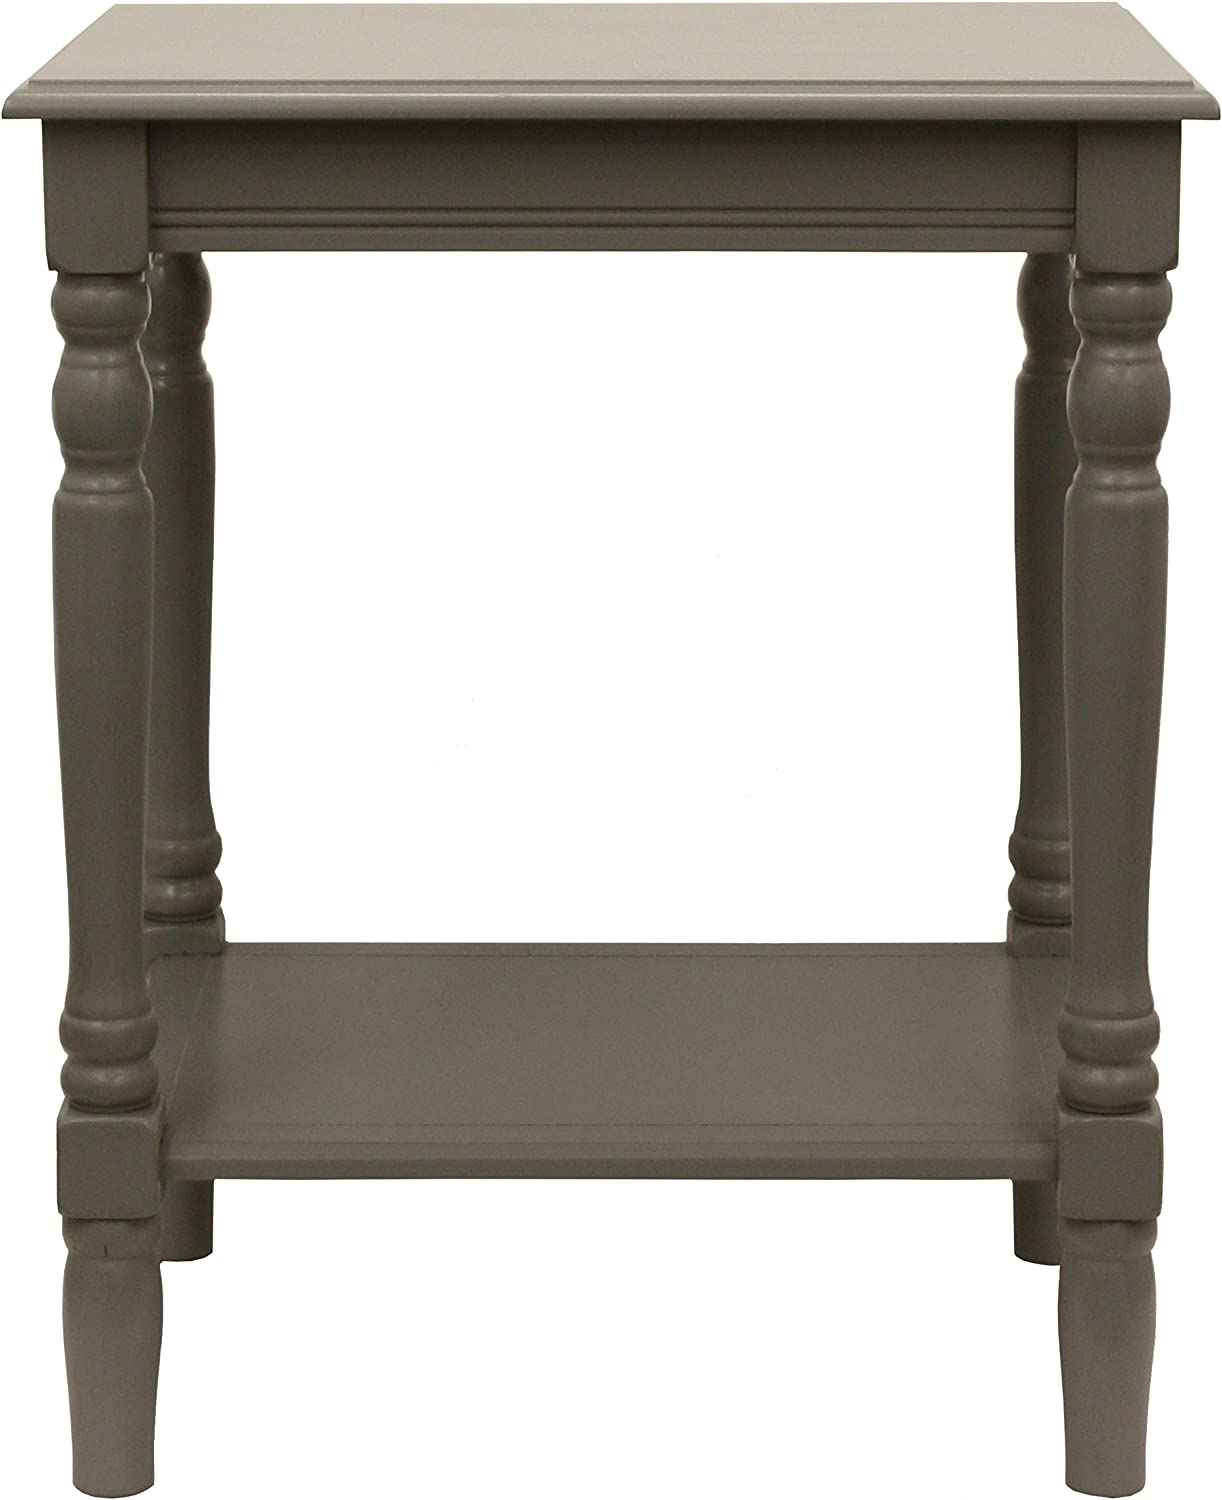 Décor Therapy FR1862 End Table, Gray